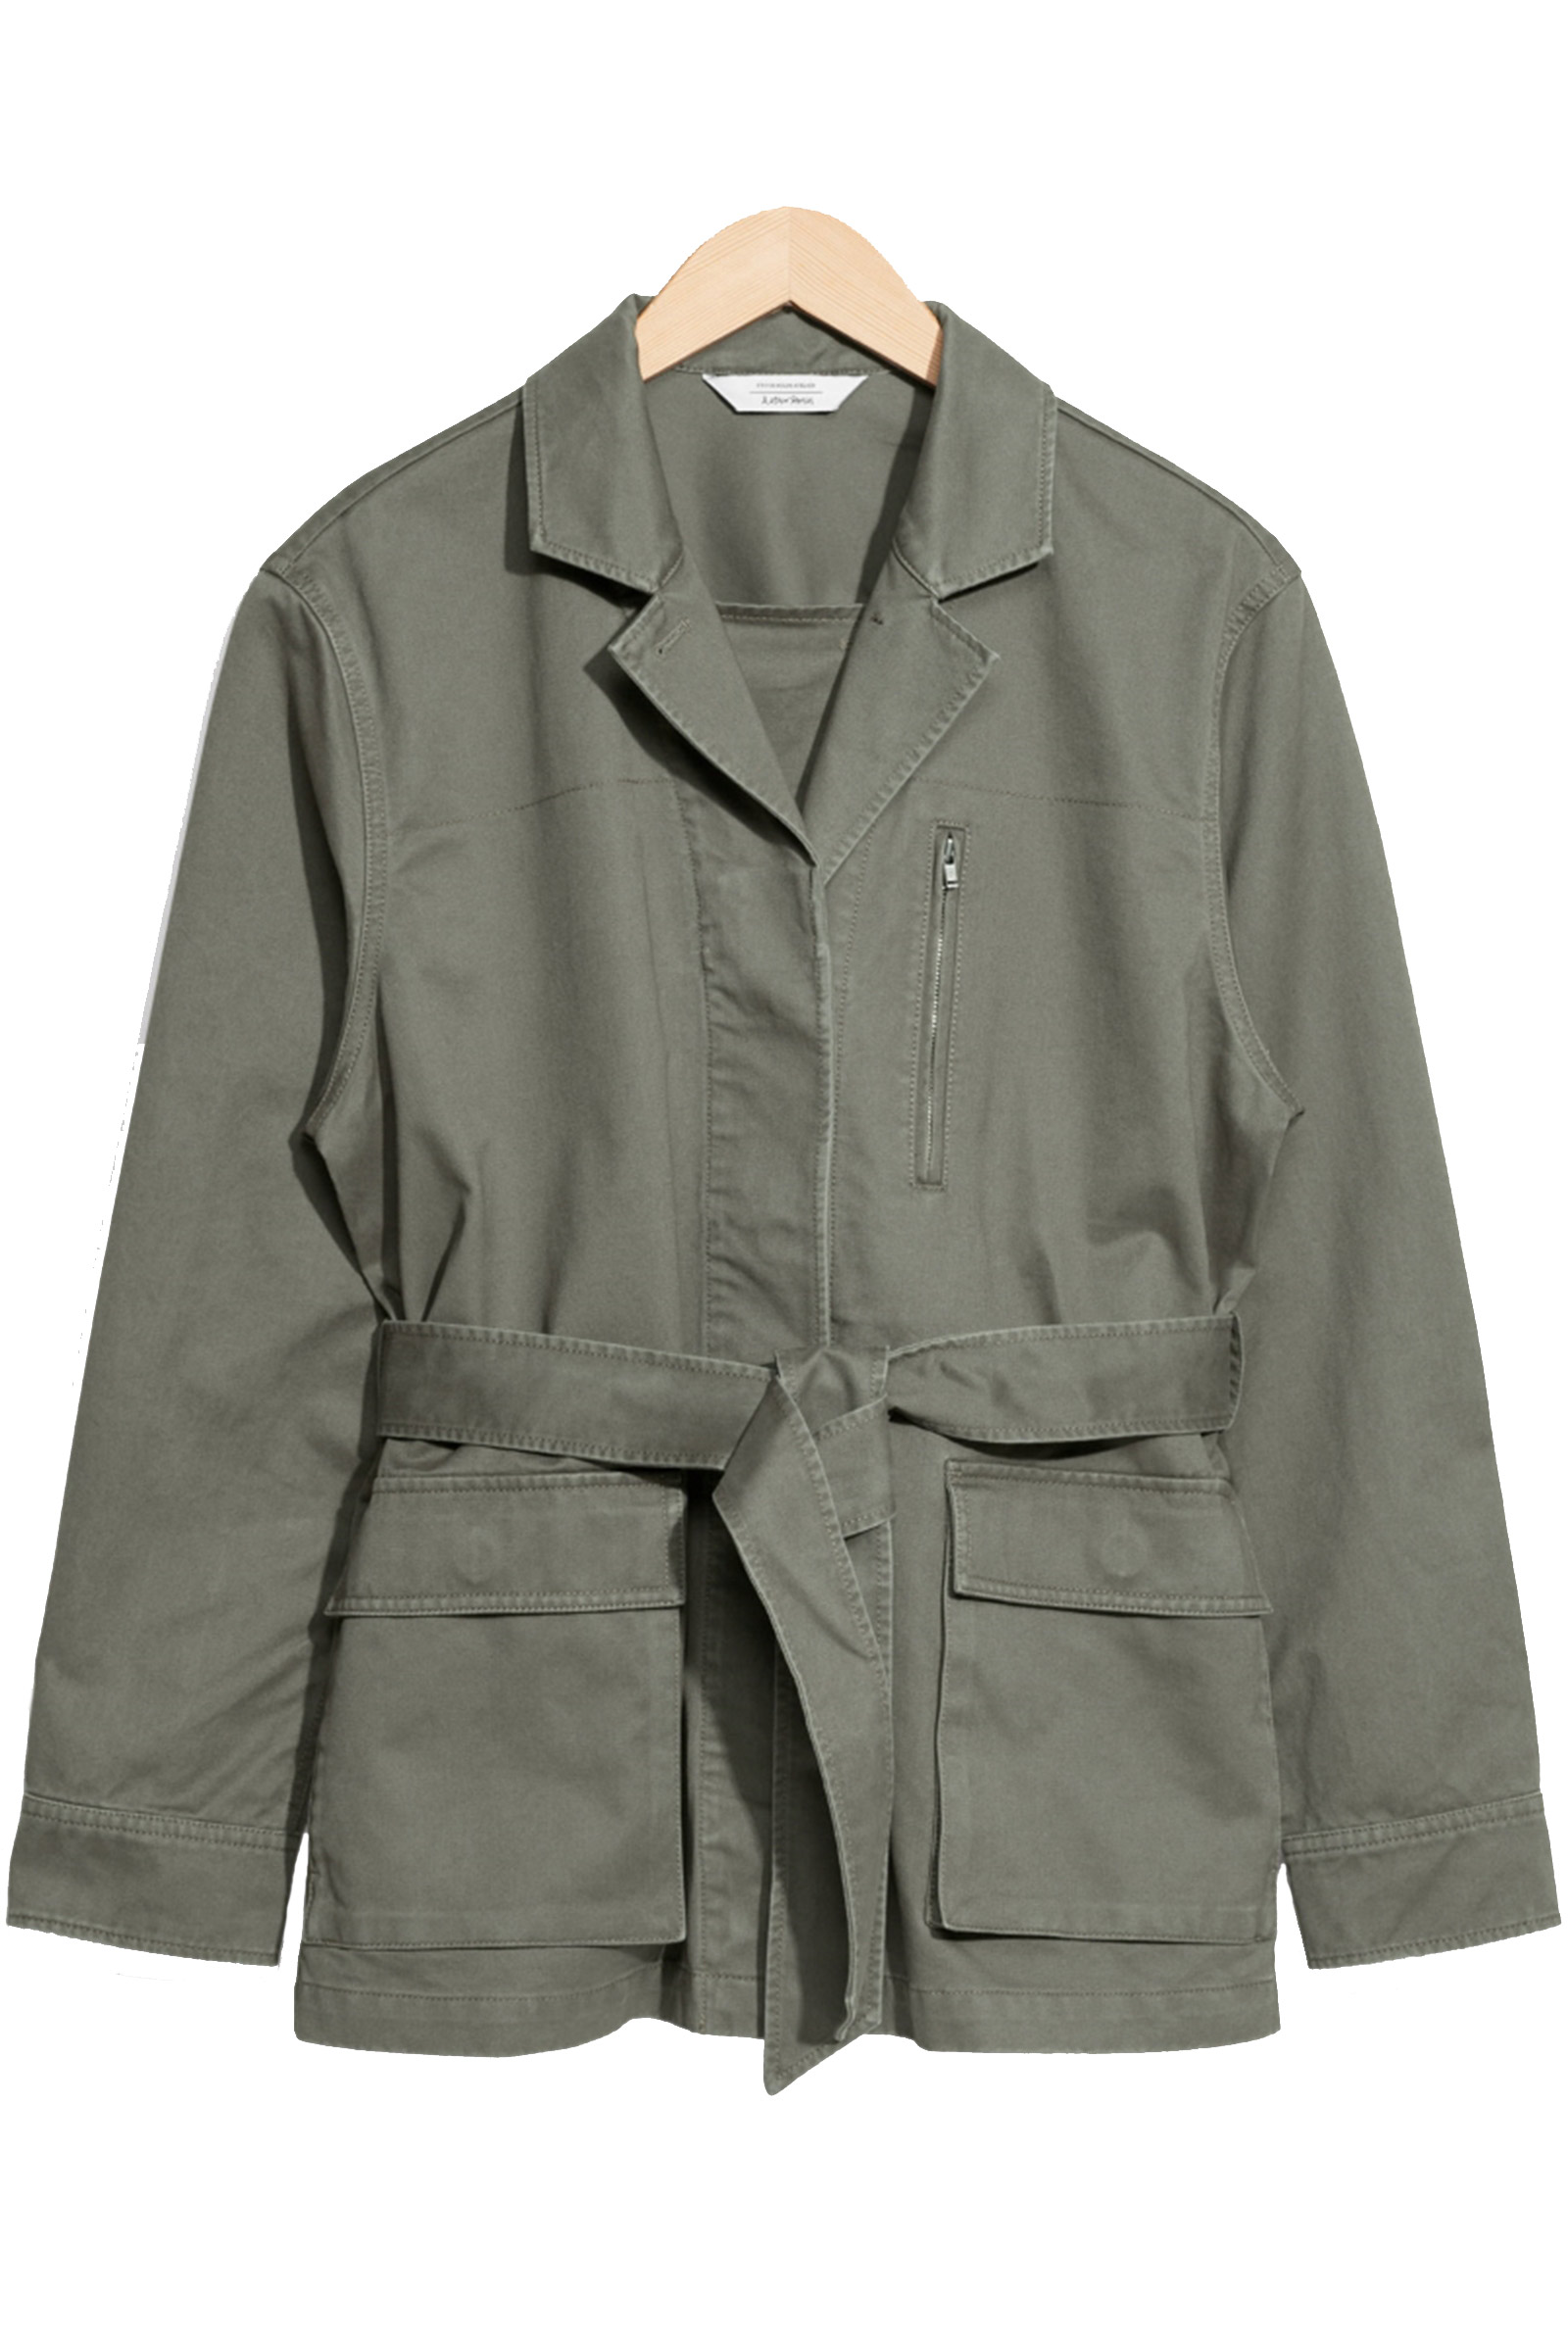 Click to Buy & Other Stories Green Jacket Online